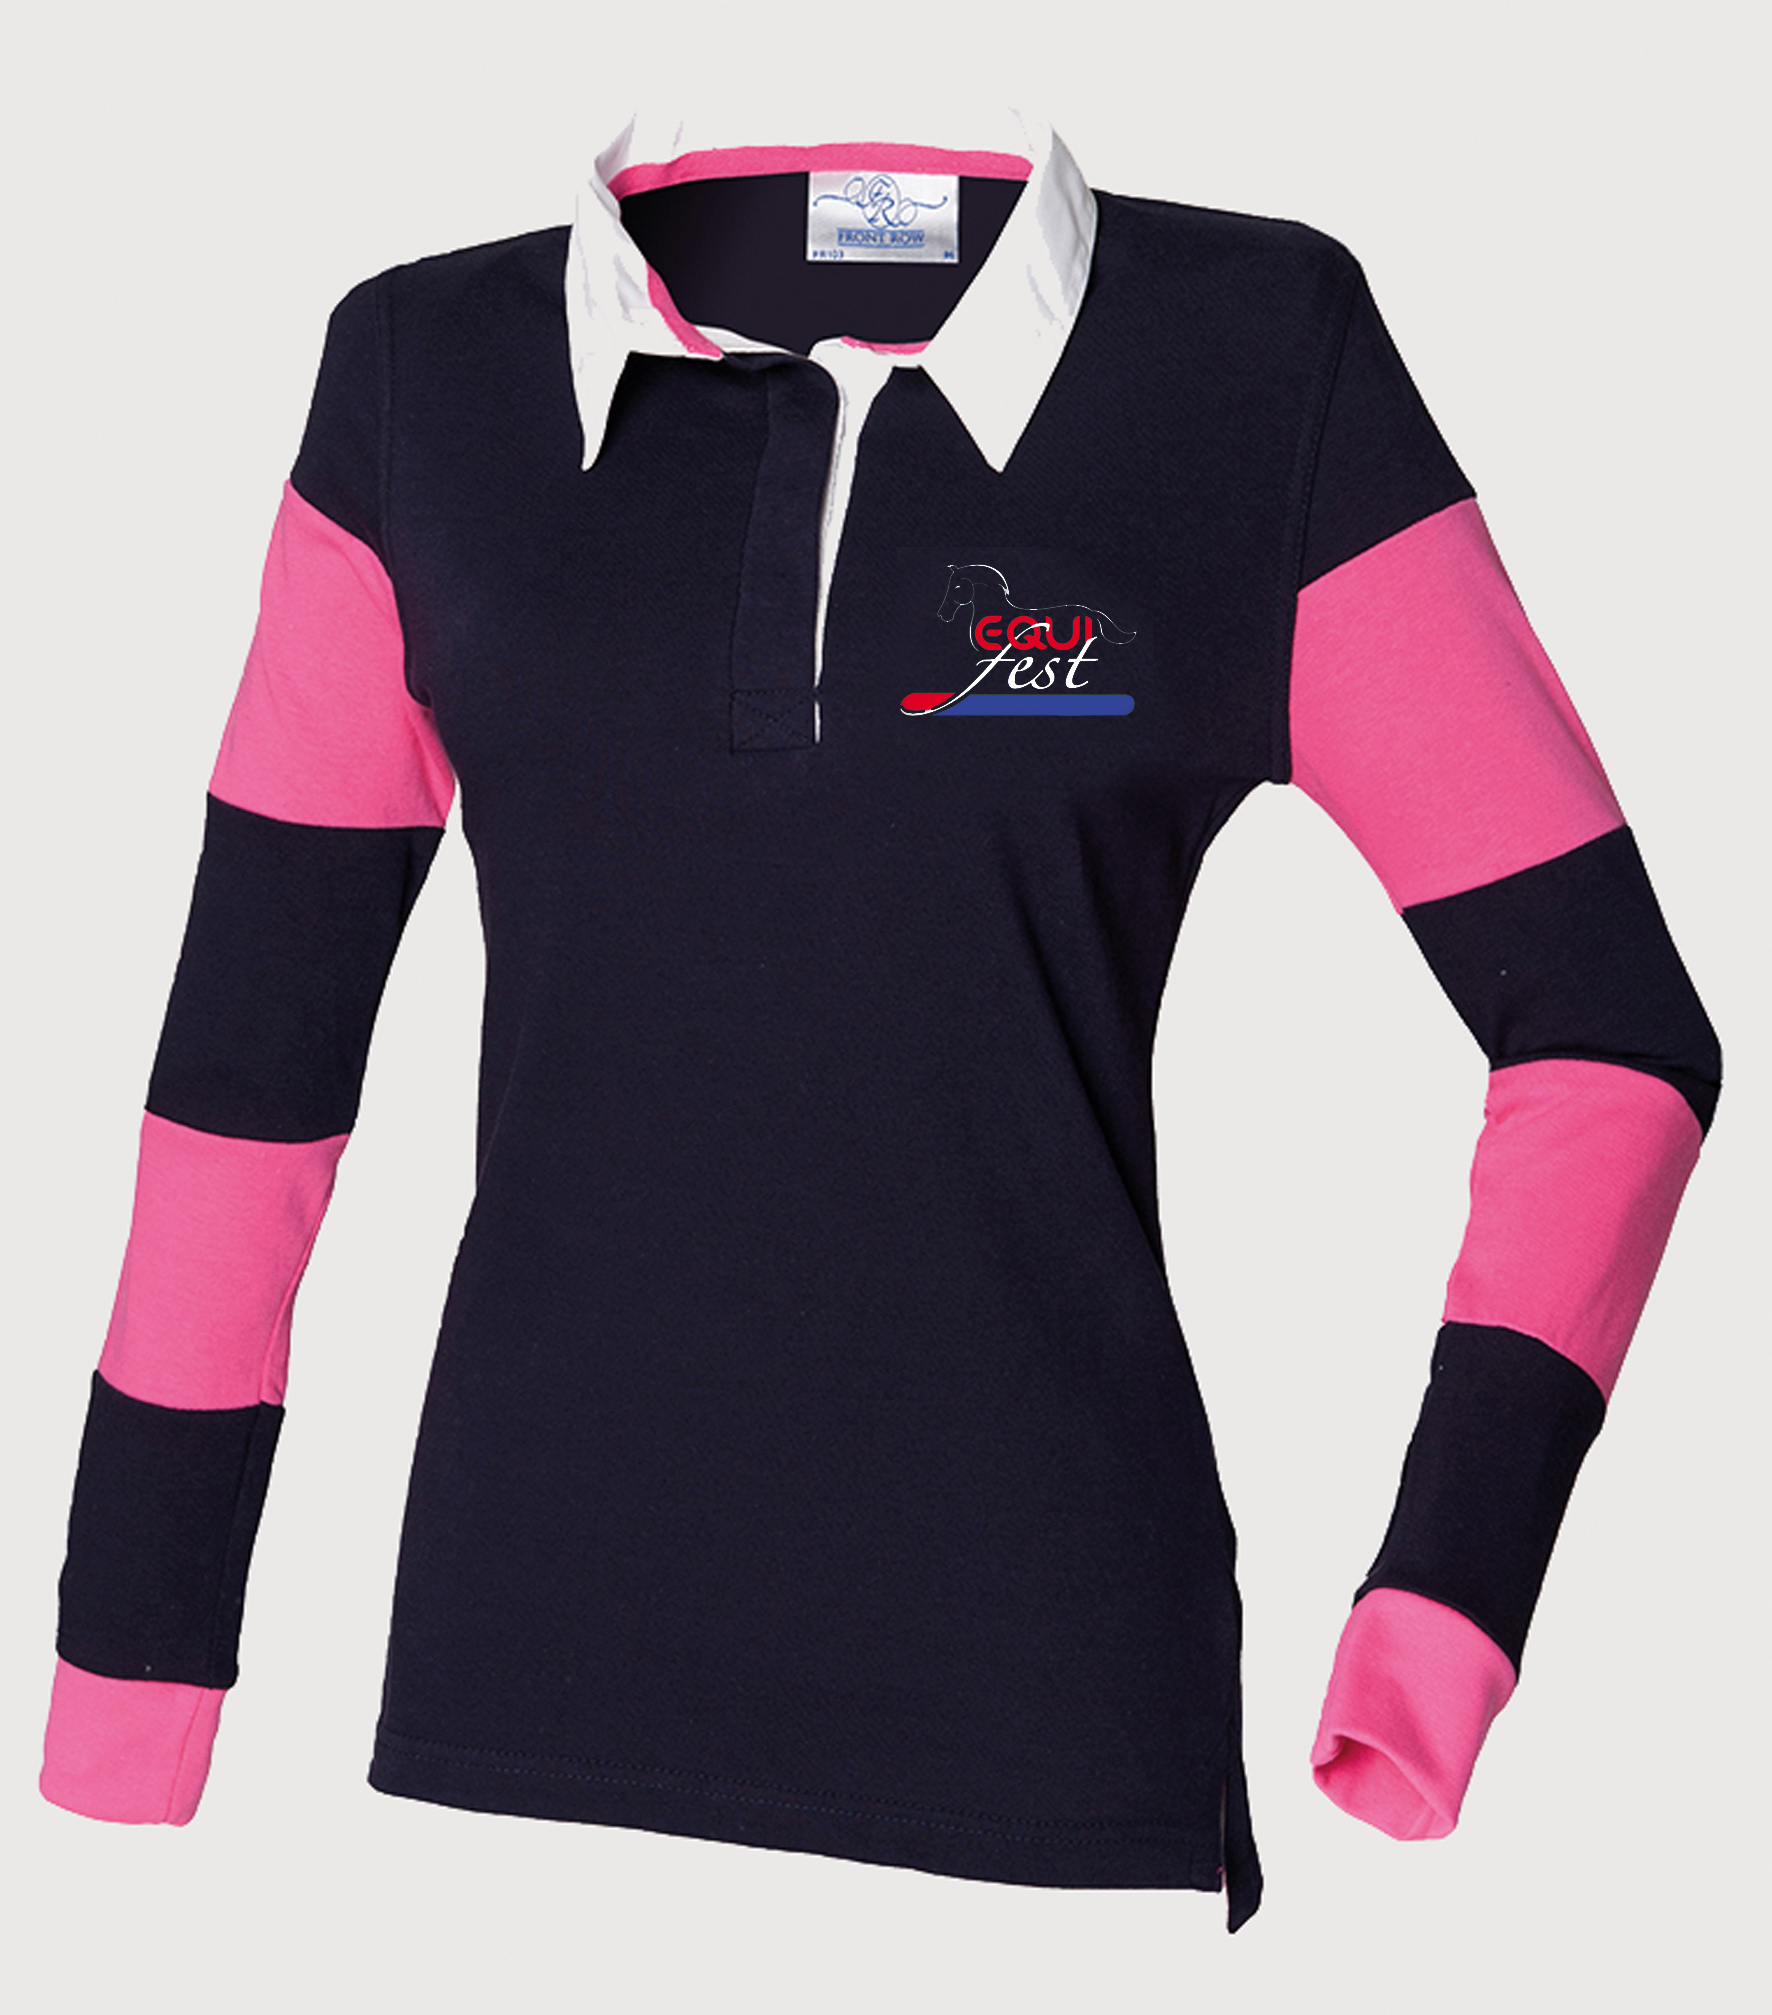 Equifest FR103 Navy Navy BrightPink - Equifest Launch Official Clothing Range